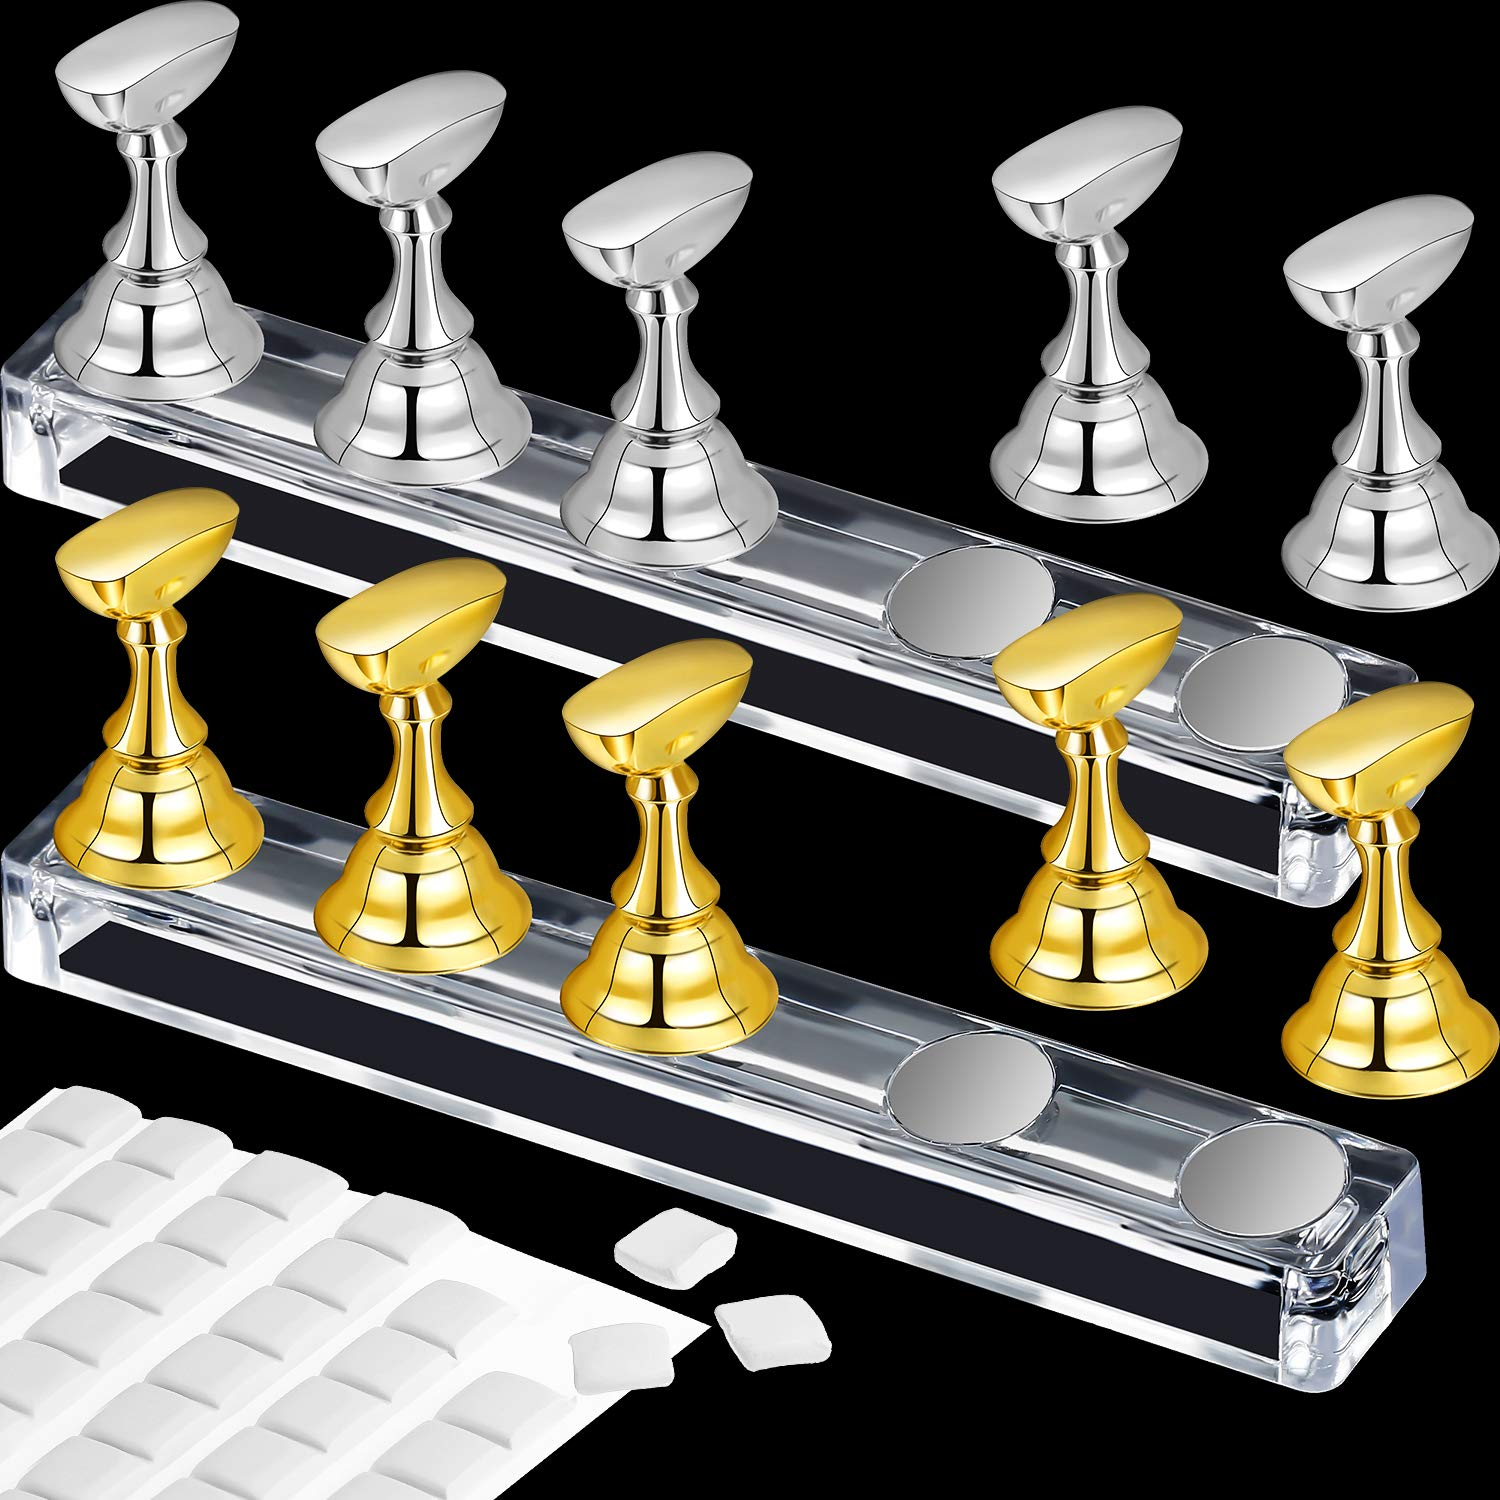 2 Set Acrylic Nail Art Practice Stands Magnetic Nail Tips Holders Training Fingernail Display Stands DIY Nail Crystal Holders and 96 Pieces White Reusable Adhesive Putty (Gold and Silver) : Beauty